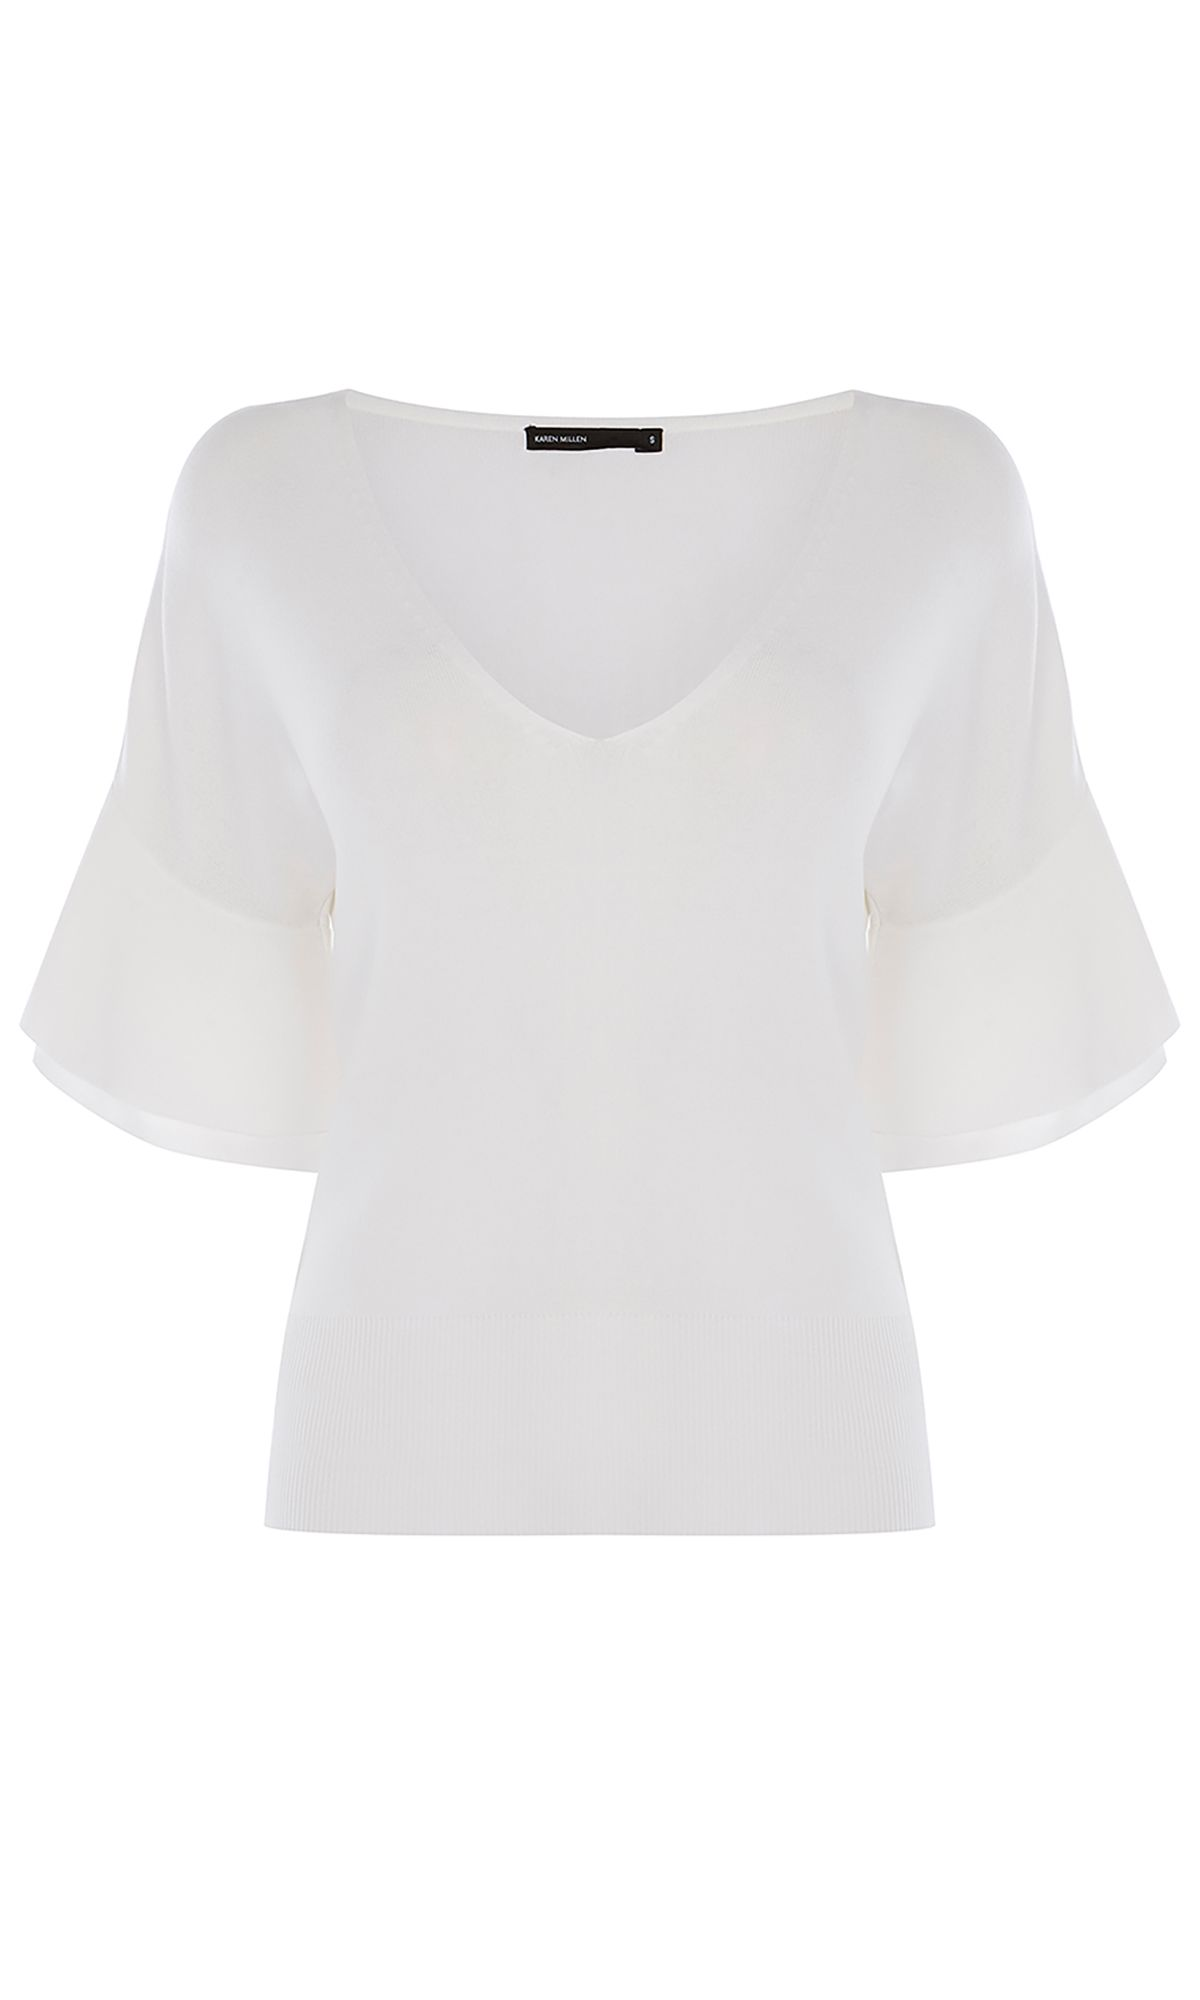 Karen Millen Frill Sleeve Top, White